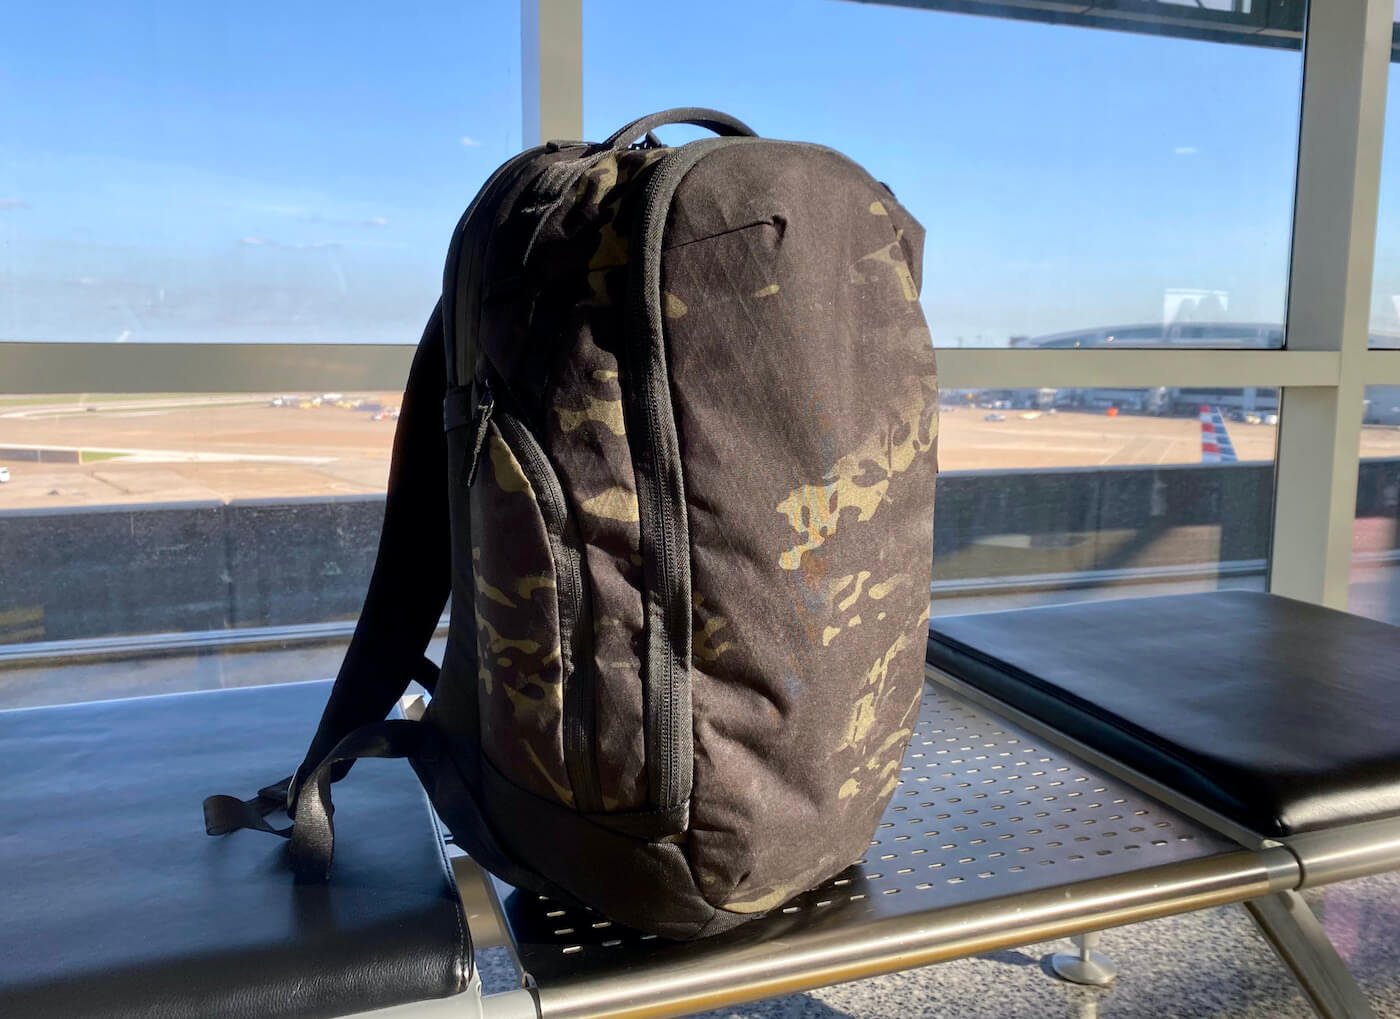 This review photo shows the Able Carry Max Backpack on a bench in an airport during the testing and review process.